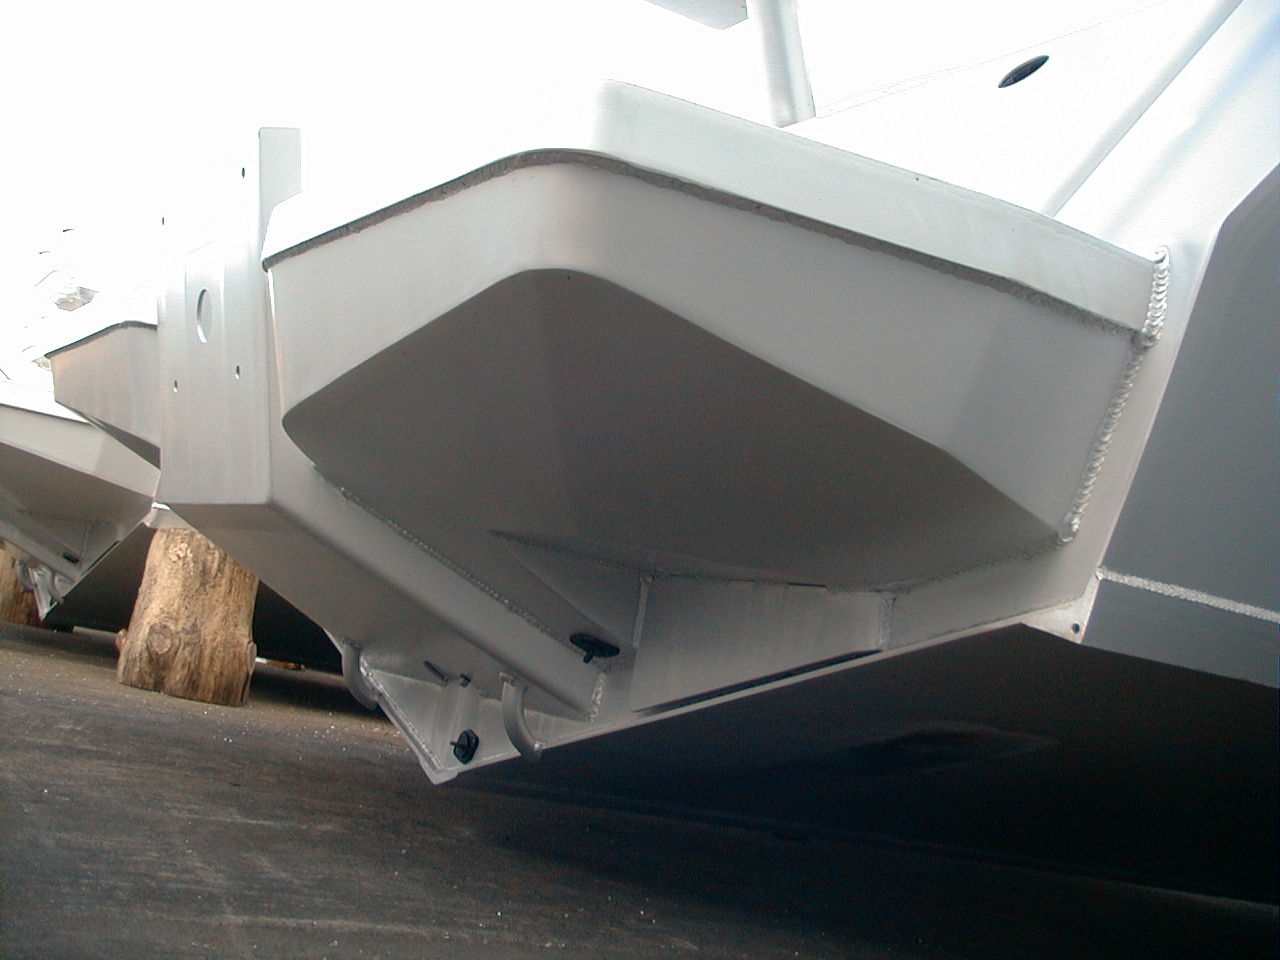 AMF Boats - Alloy Boat Builders: AMF 580 Vee Berth Cabin - Factory Overview